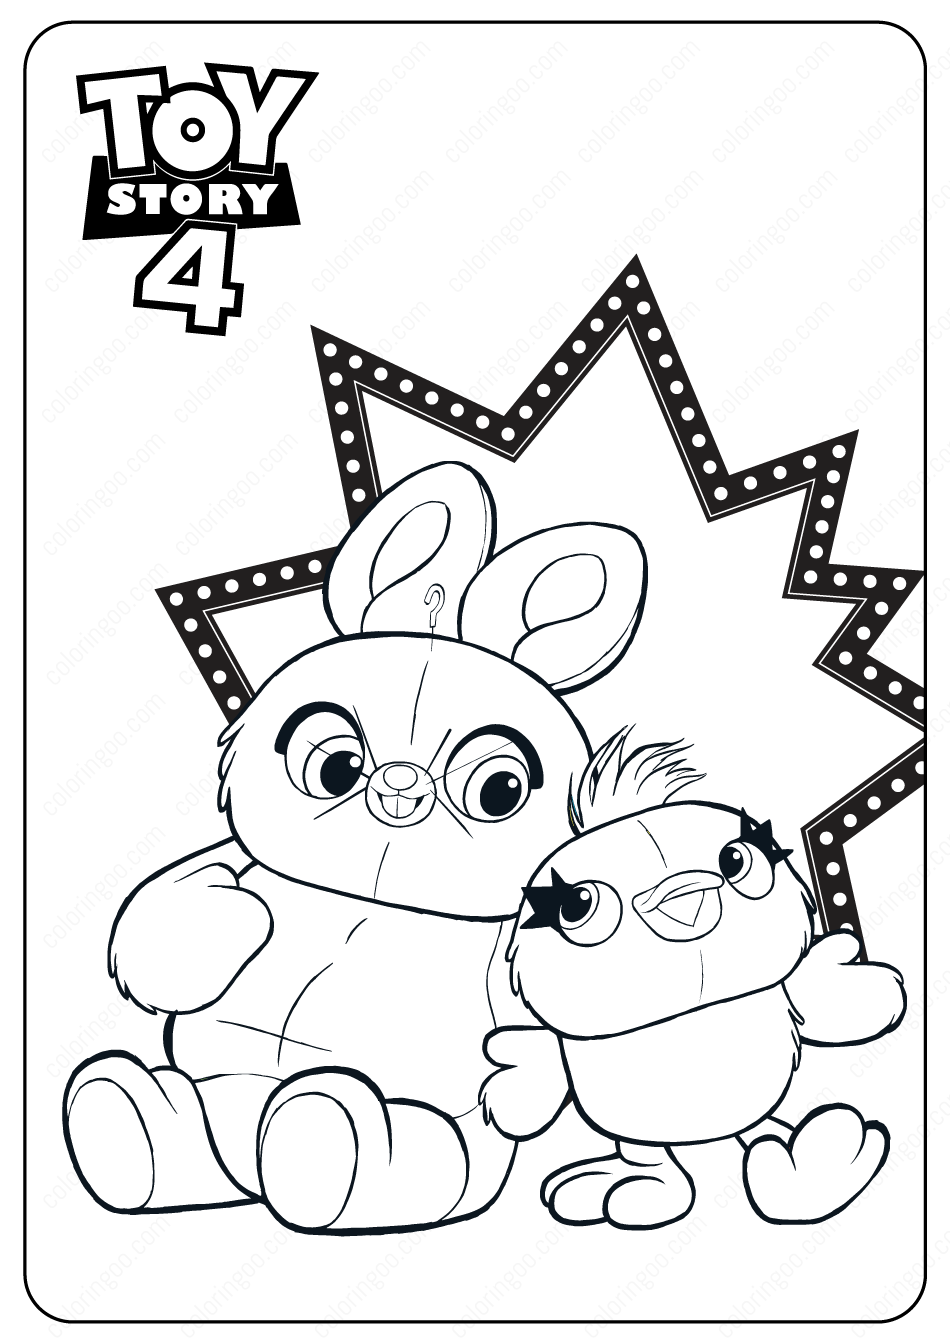 Toy Story 4 Ducky And Bunny Pdf Coloring Pages Toy Story Coloring Pages Free Disney Coloring Pages Bunny Coloring Pages